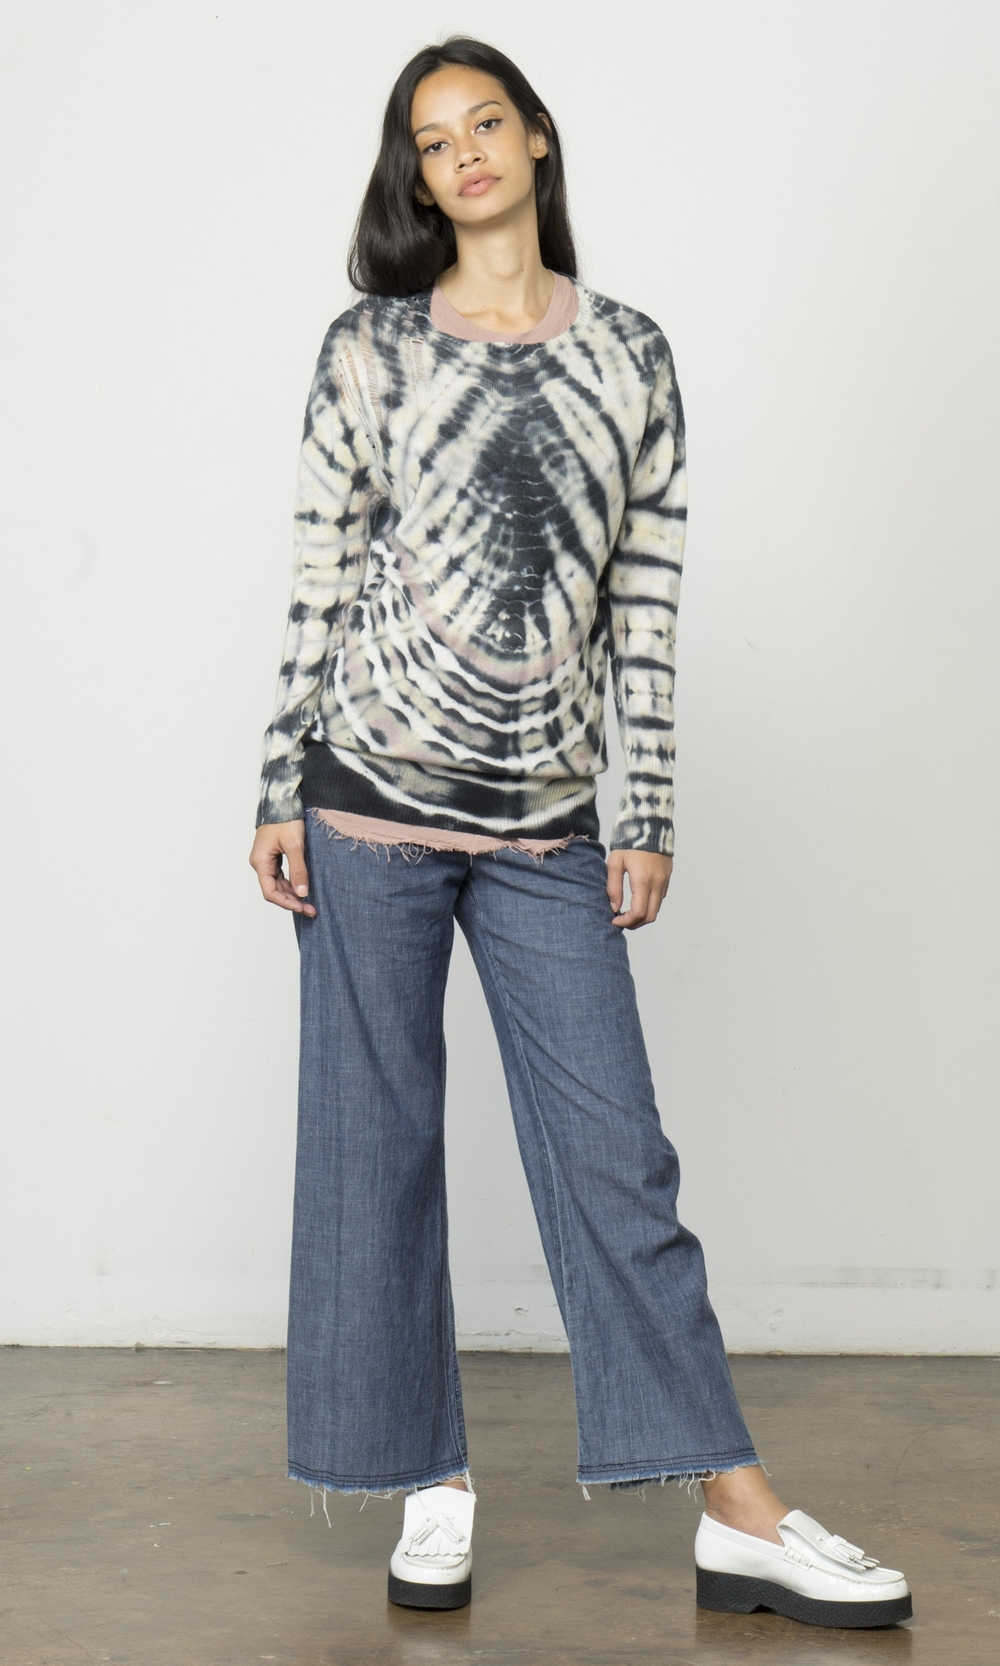 y63-6336-blkdsh_Black_Dashiki_Cashmere_Shred_Shoulder_PulloverDSC06860.jpg